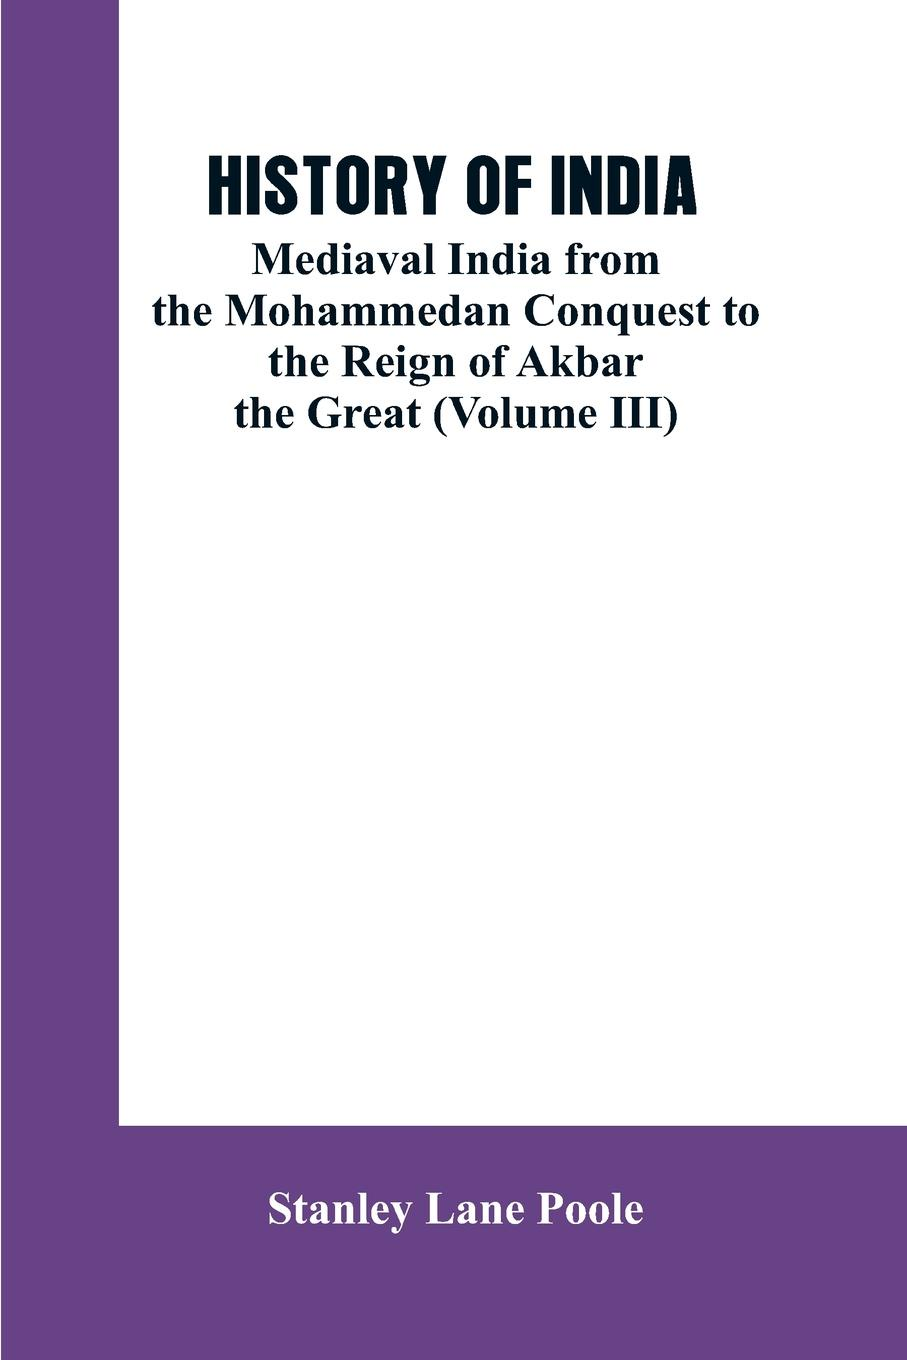 Stanley Lane Poole HISTORY OF INDIA. Mediaval India from the Mohammedon Conquest to the Reign of Akbar the Great (Volume III) india black